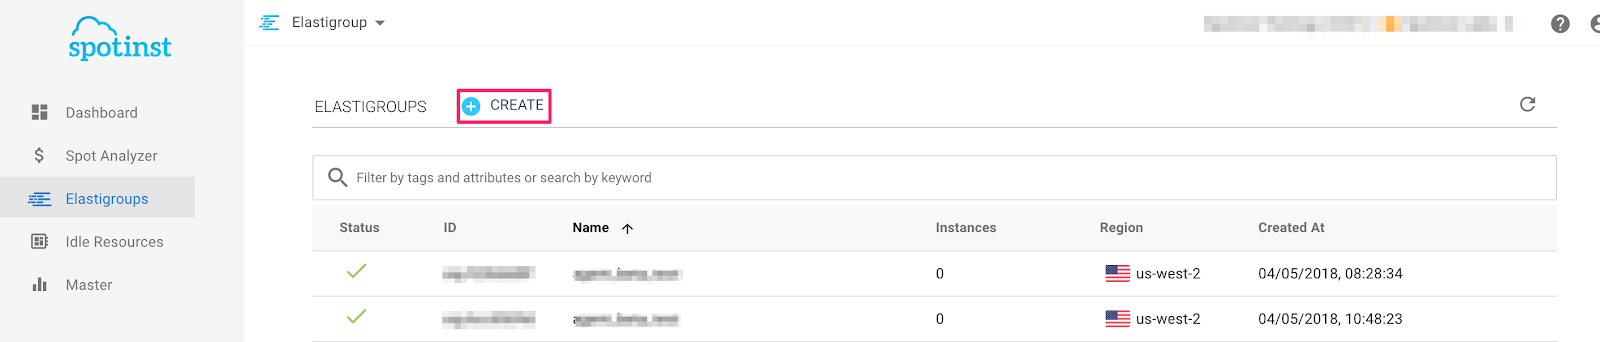 Importing an AWS Auto Scaling Group into Elastigroup in 3